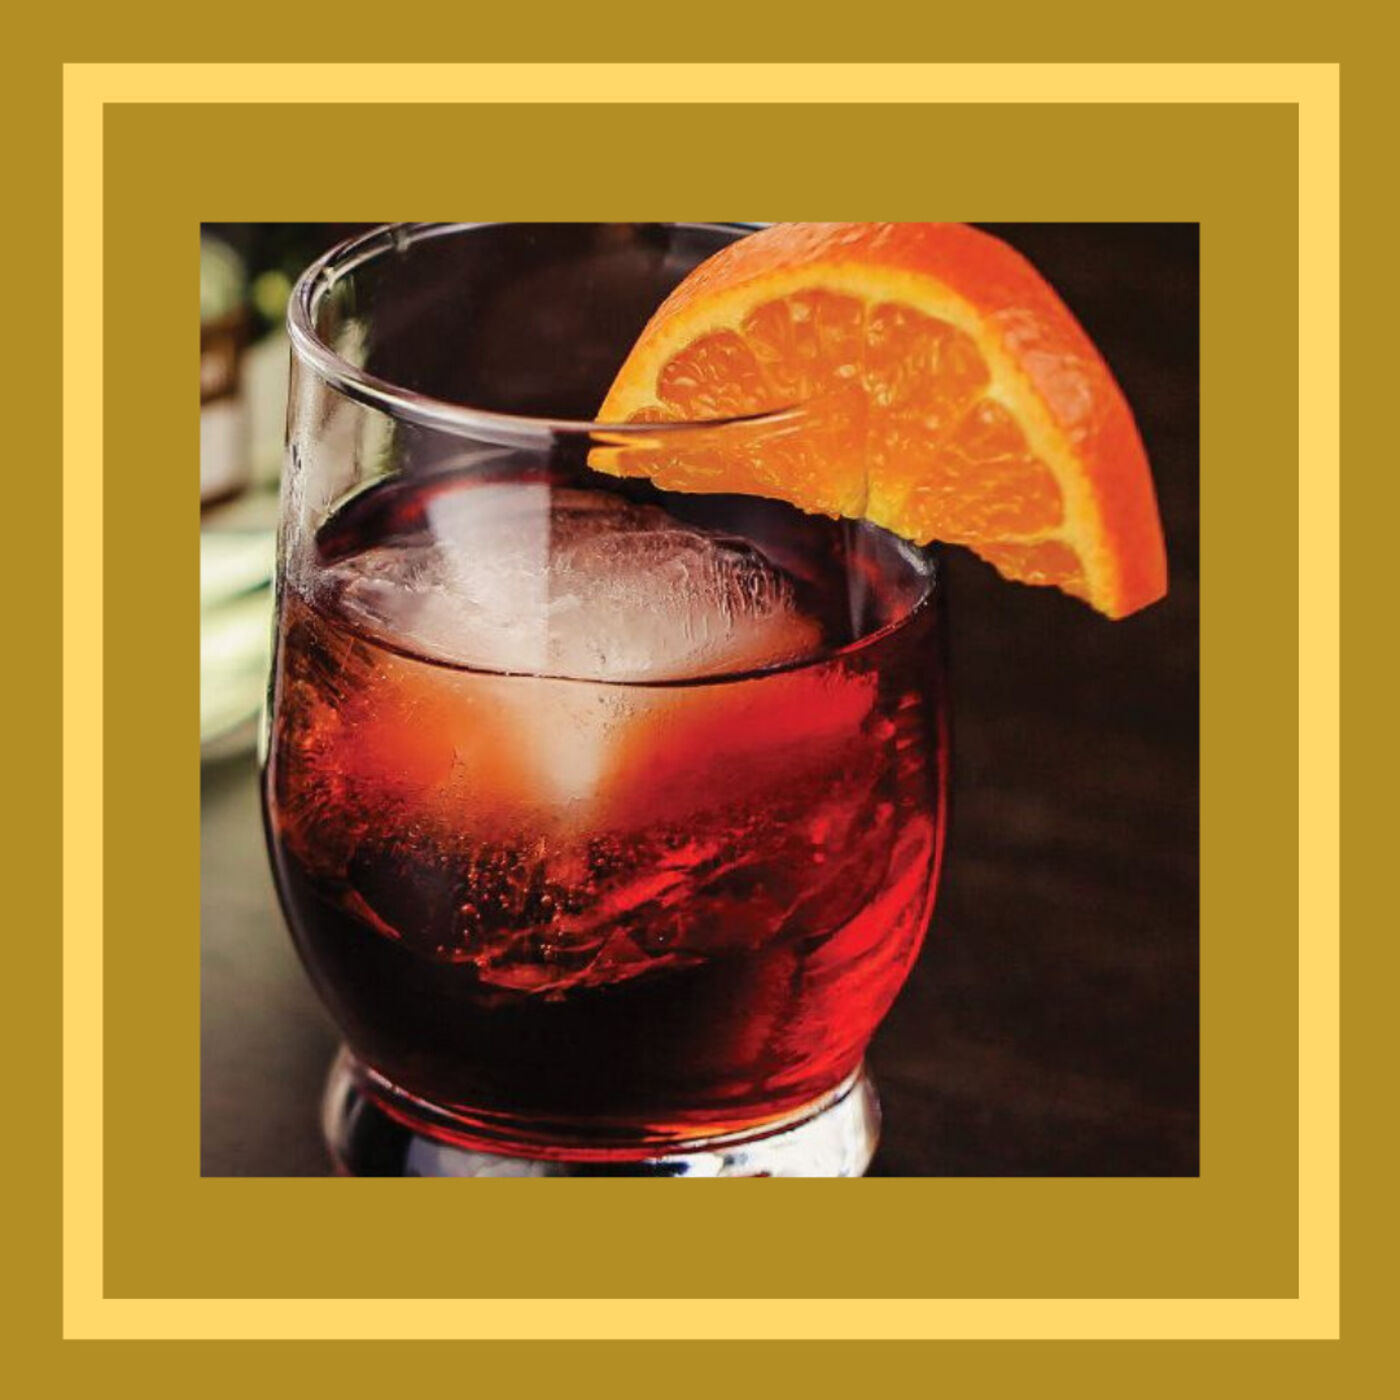 I'll Have a (Count) Negroni!